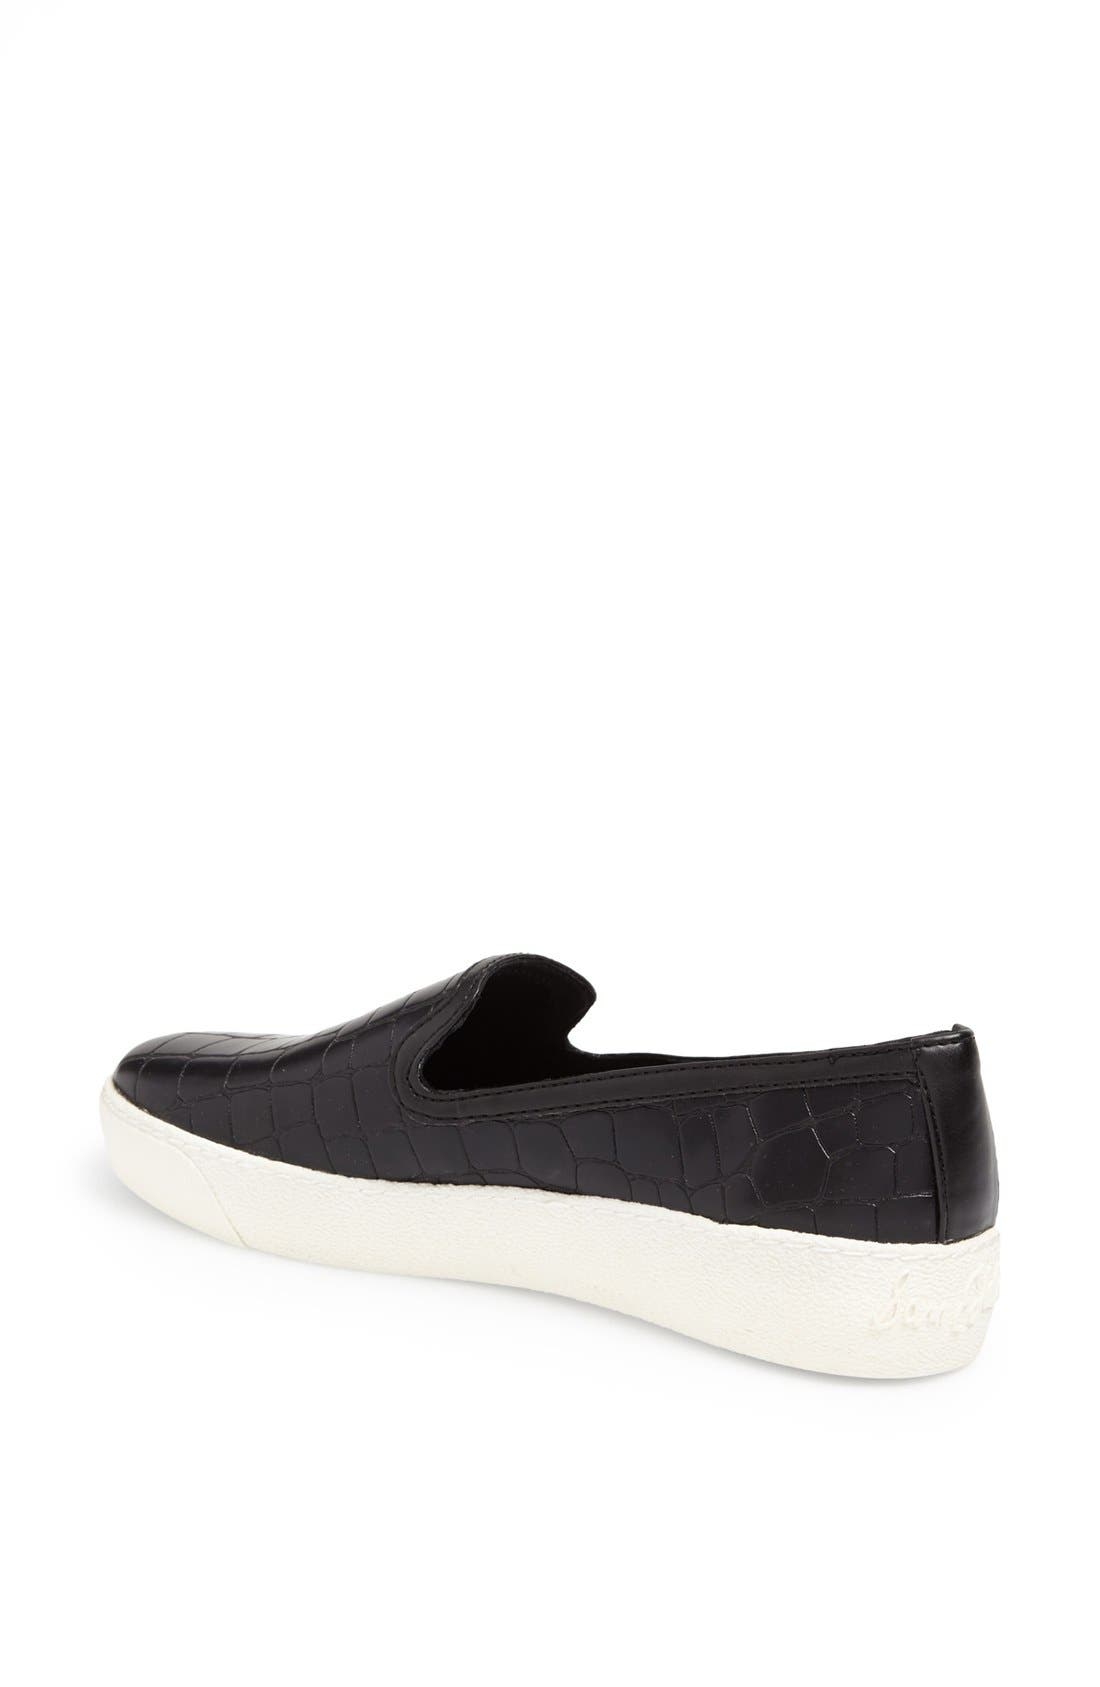 Alternate Image 2  - Sam Edelman 'Becker' Slip On